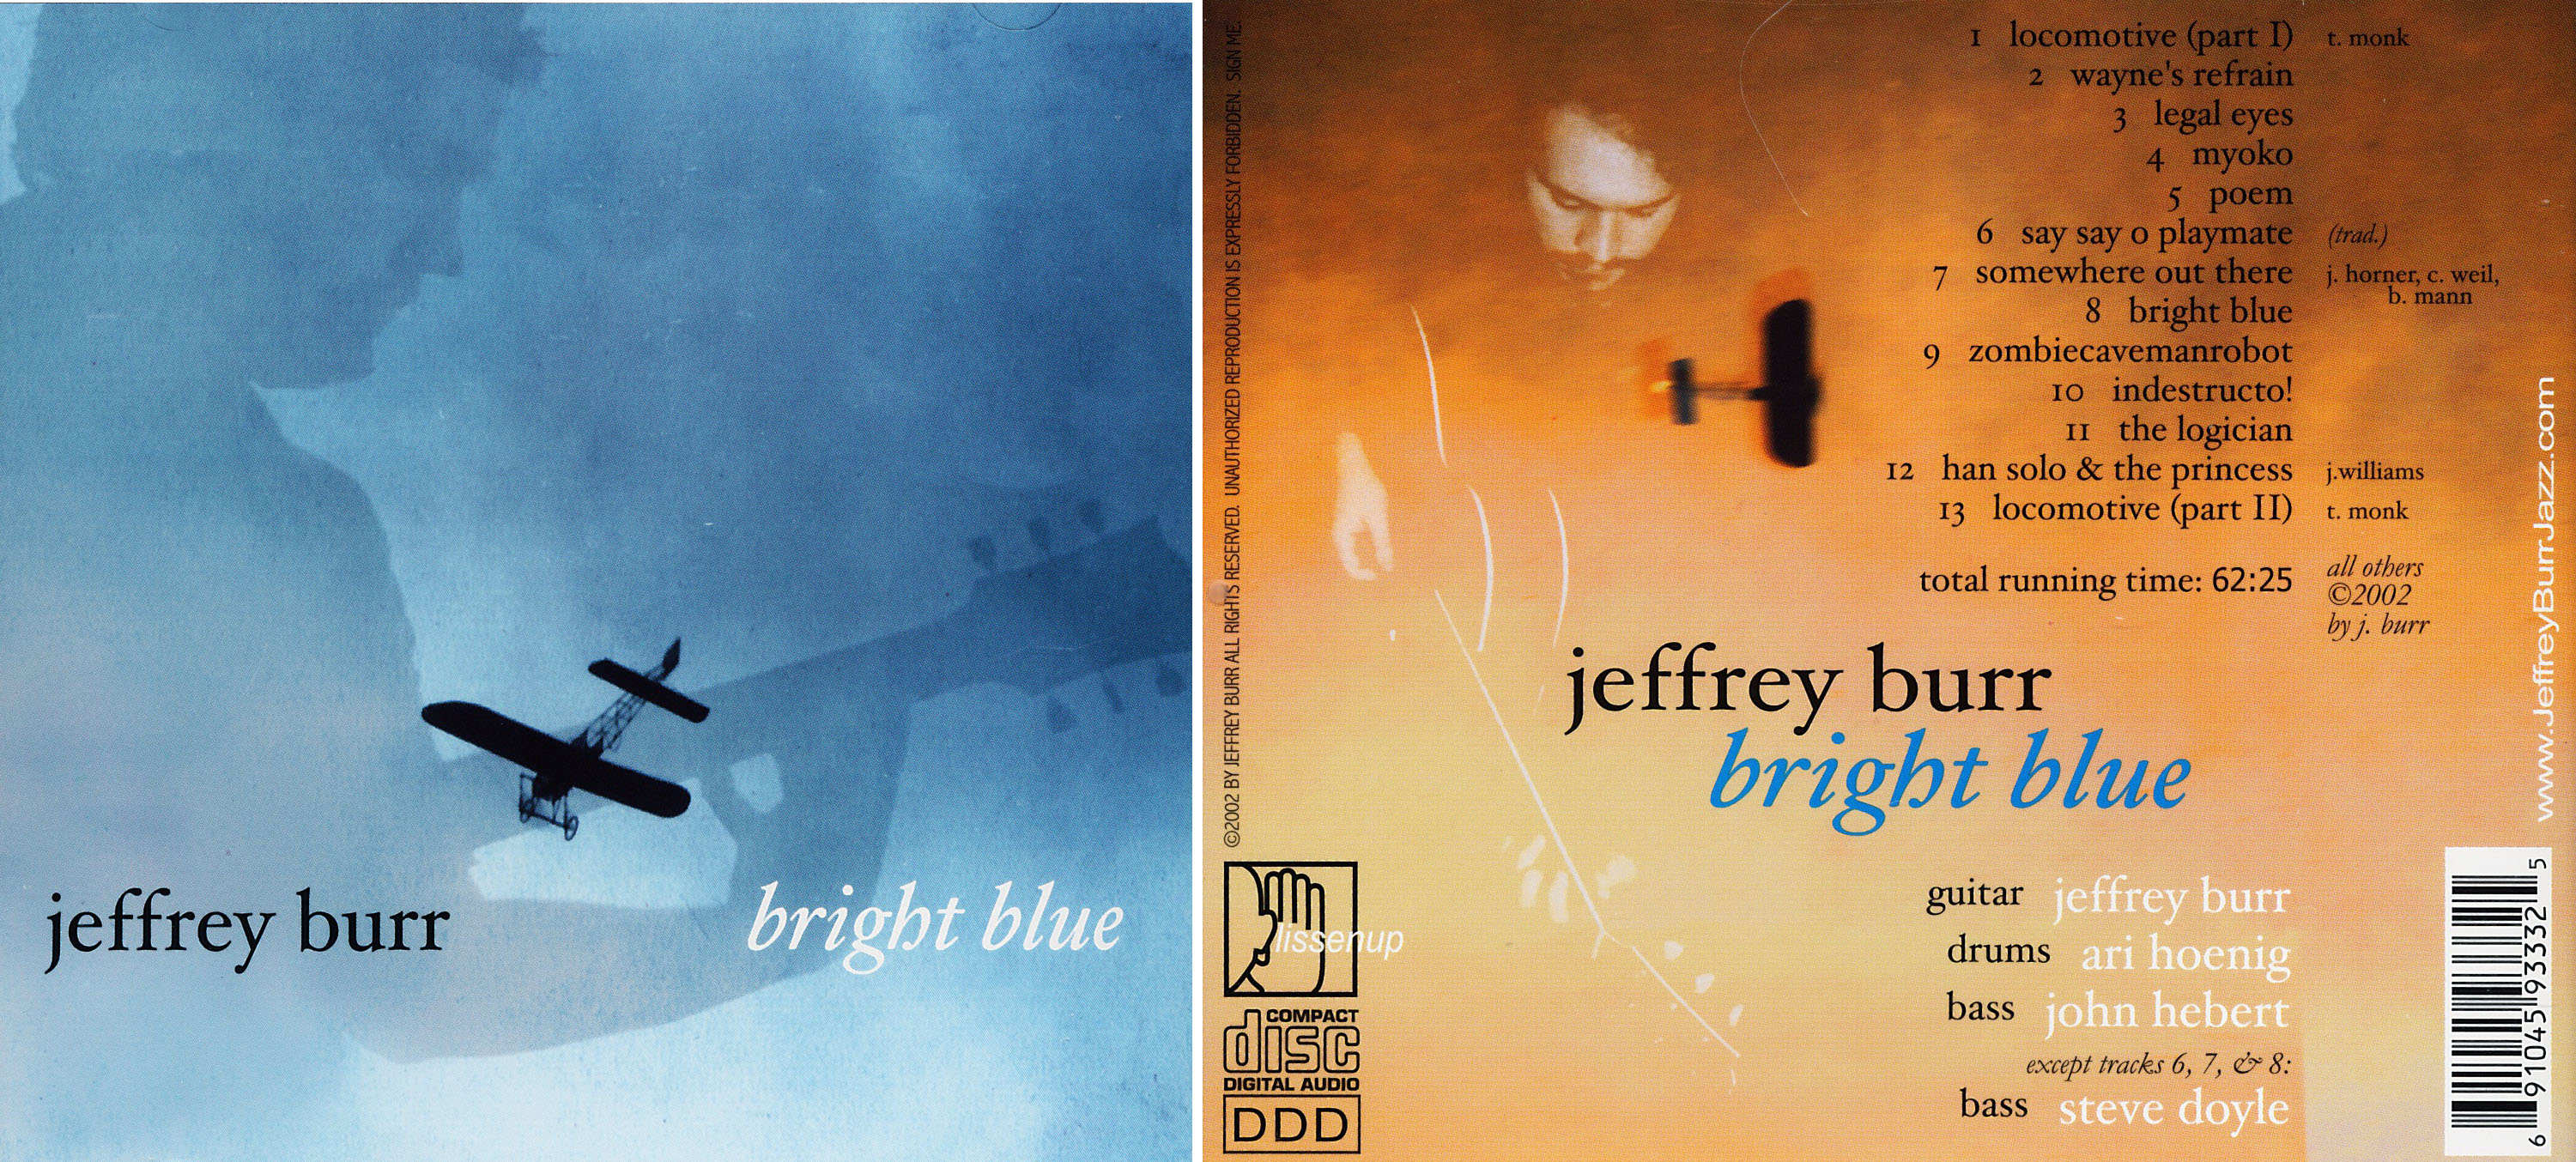 Jeffrey Burr | Bright Blue